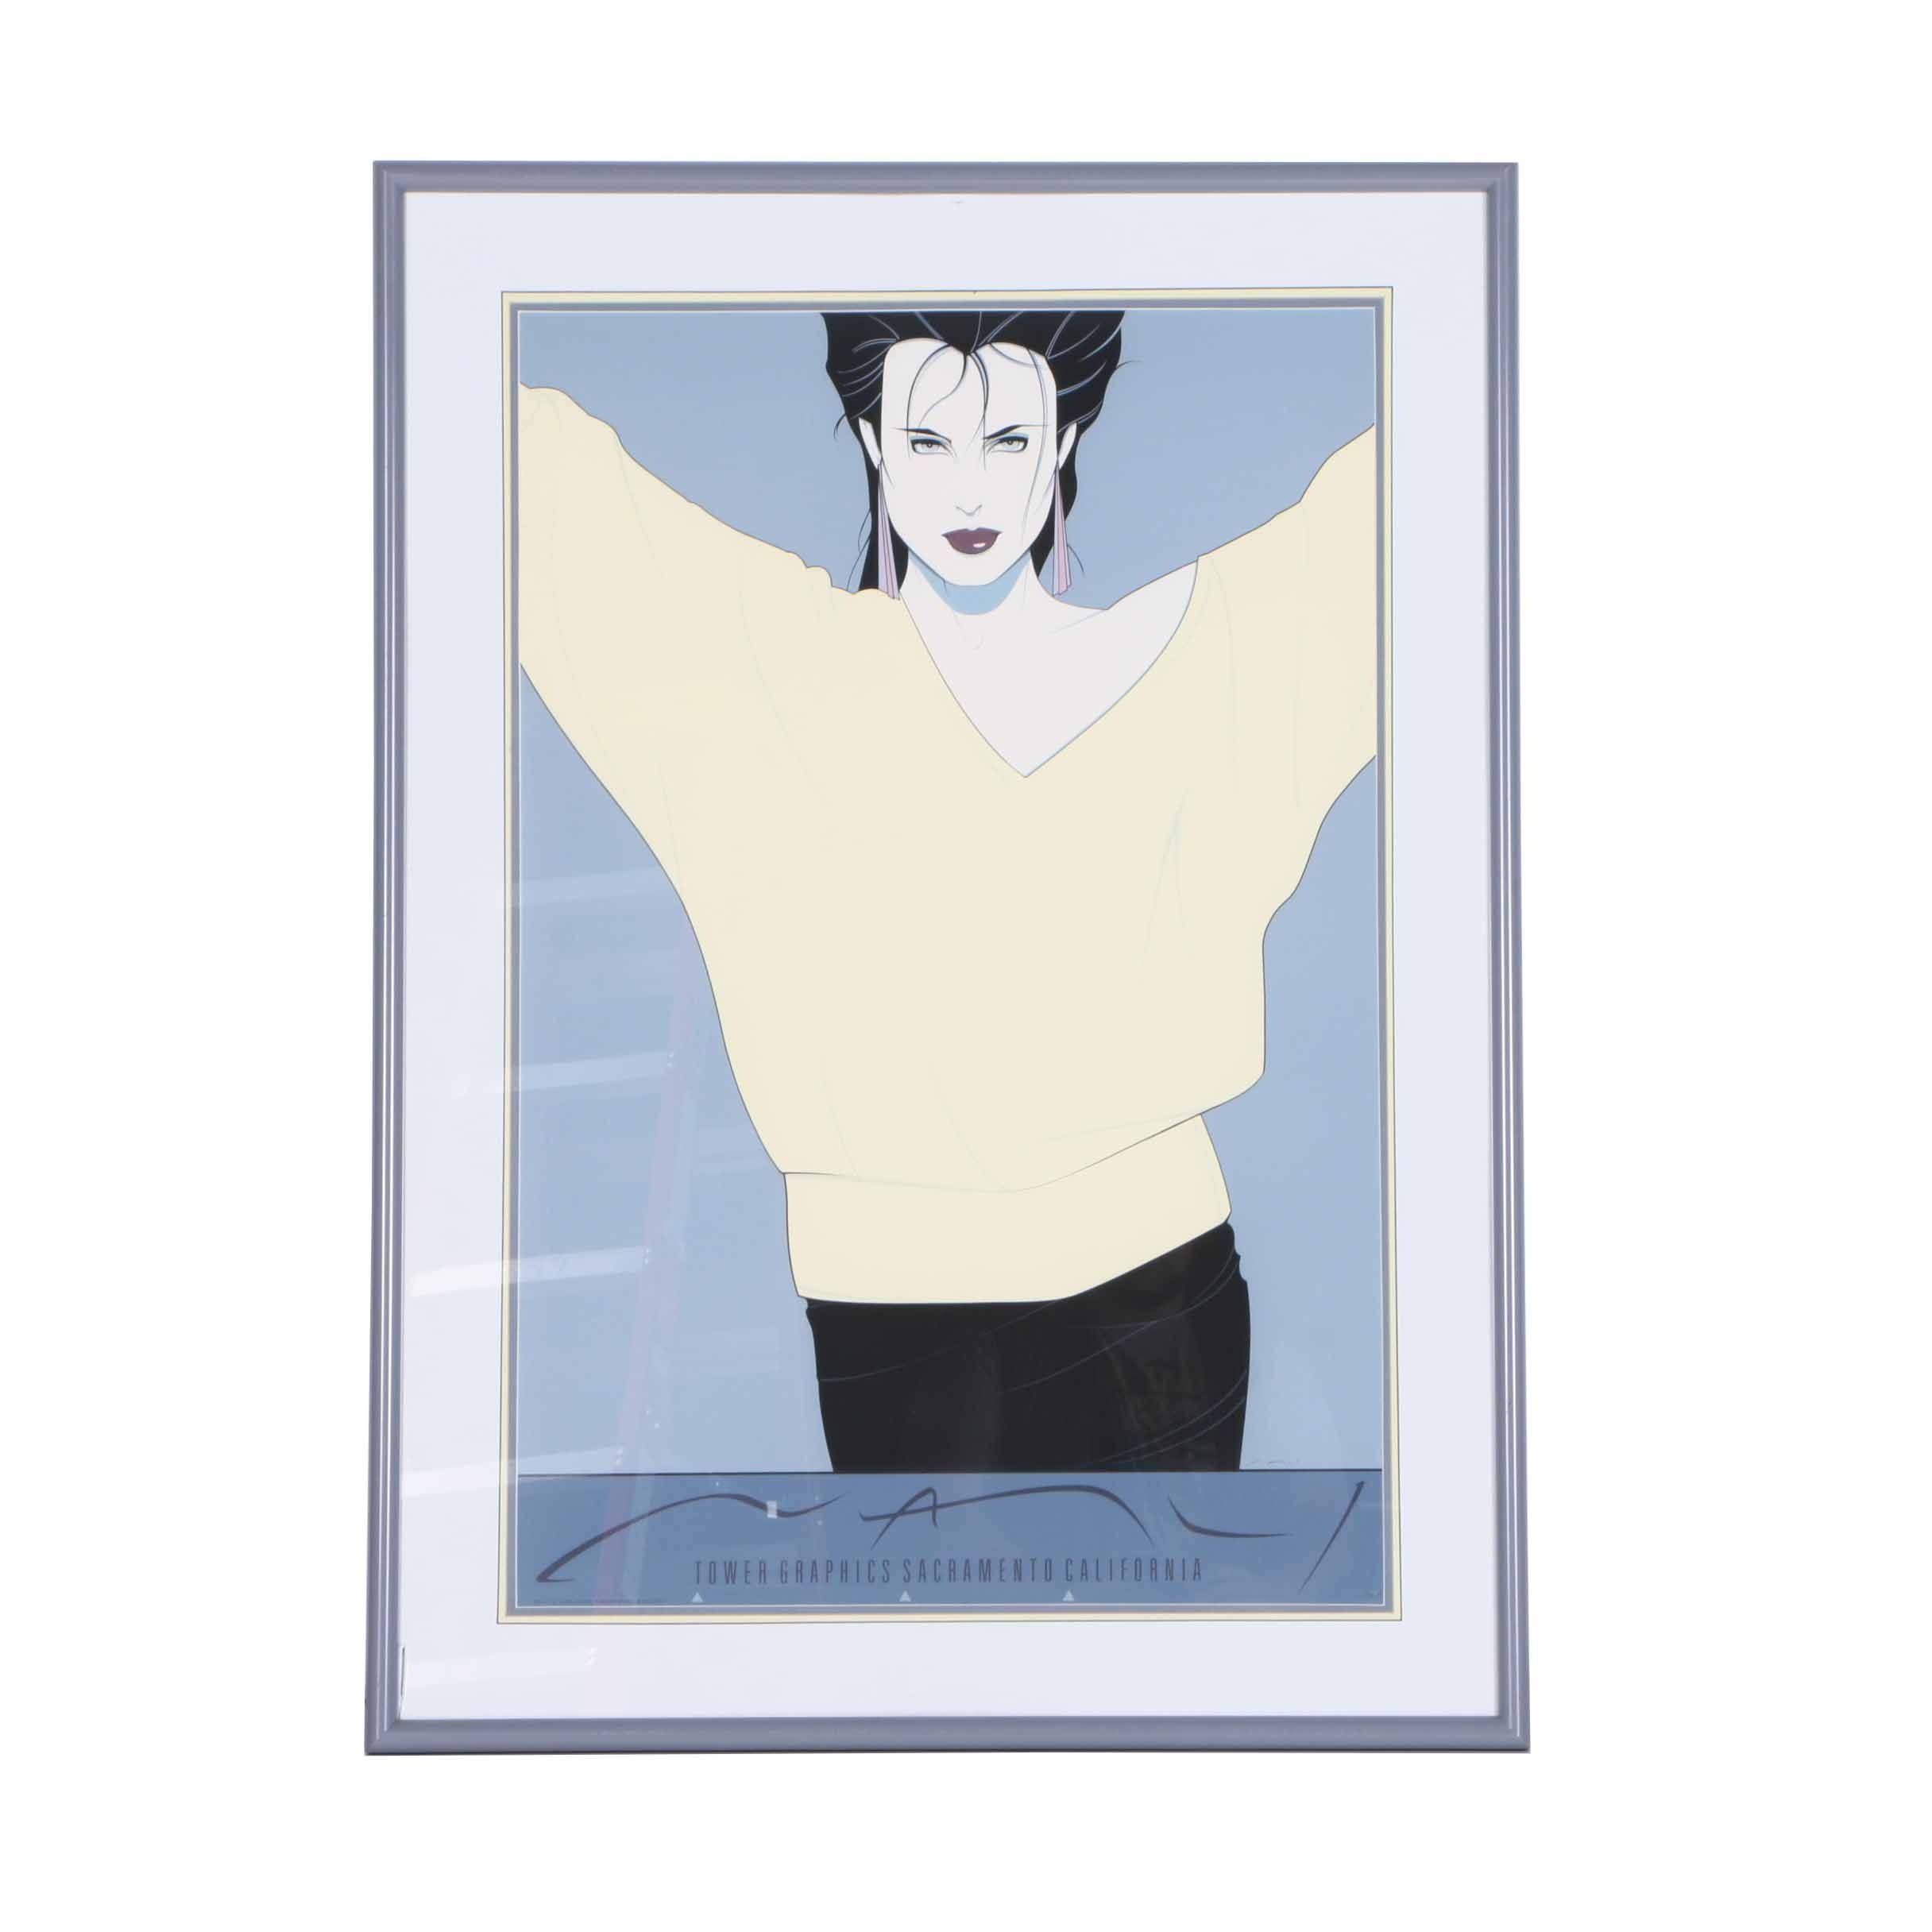 """Serigraph on Paper After Patrick Nagel """"Tower Graphics Sacramento"""""""